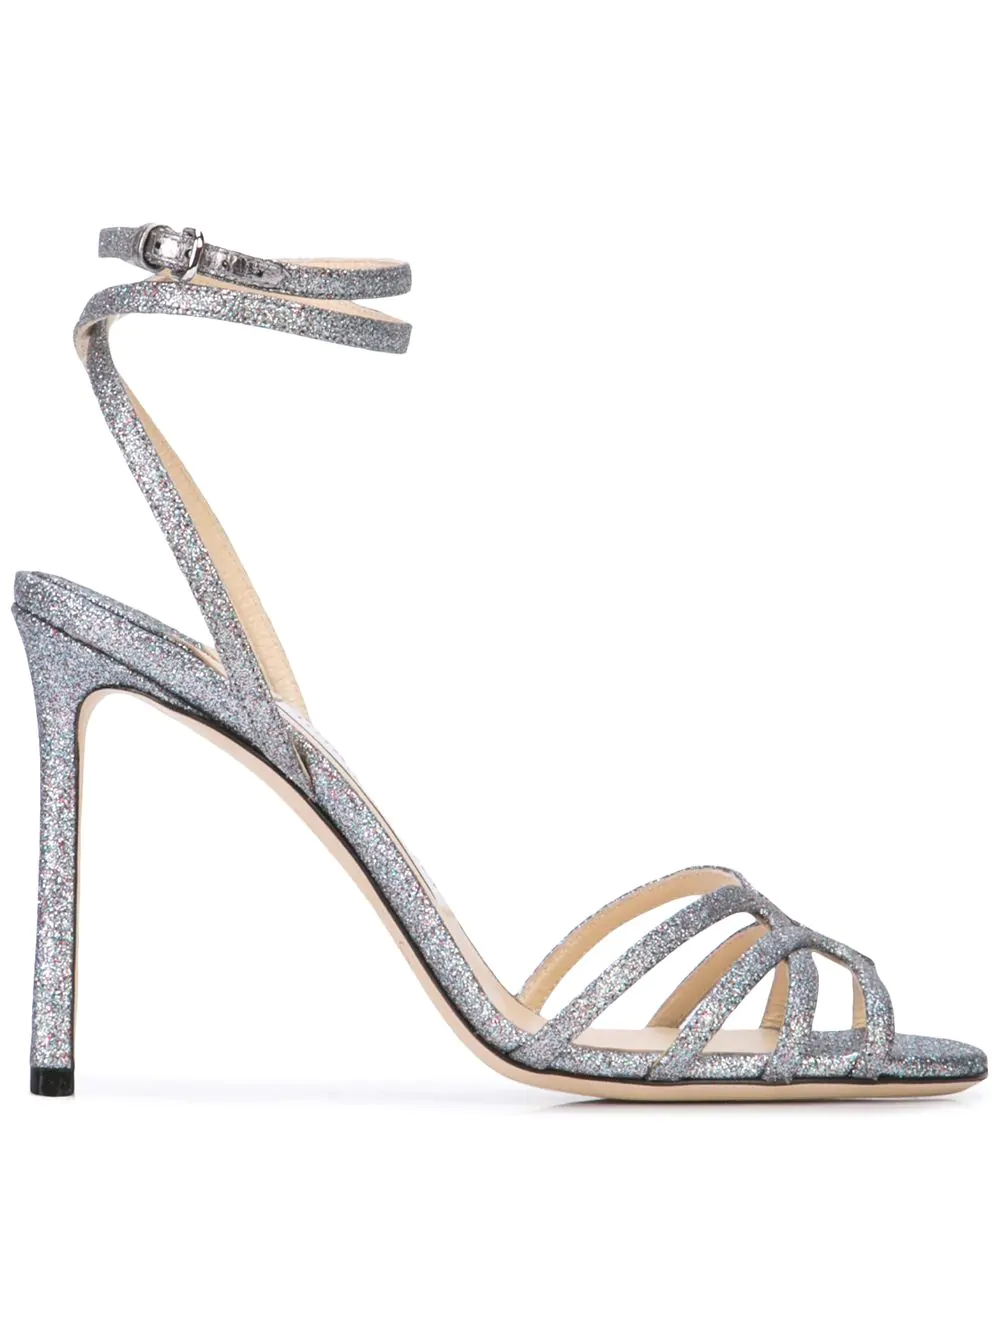 ecfcb2f01f2 Jimmy Choo Mimi 100 Anthracite Metallic Nappa Leather Wrap Around Sandals  In Silver